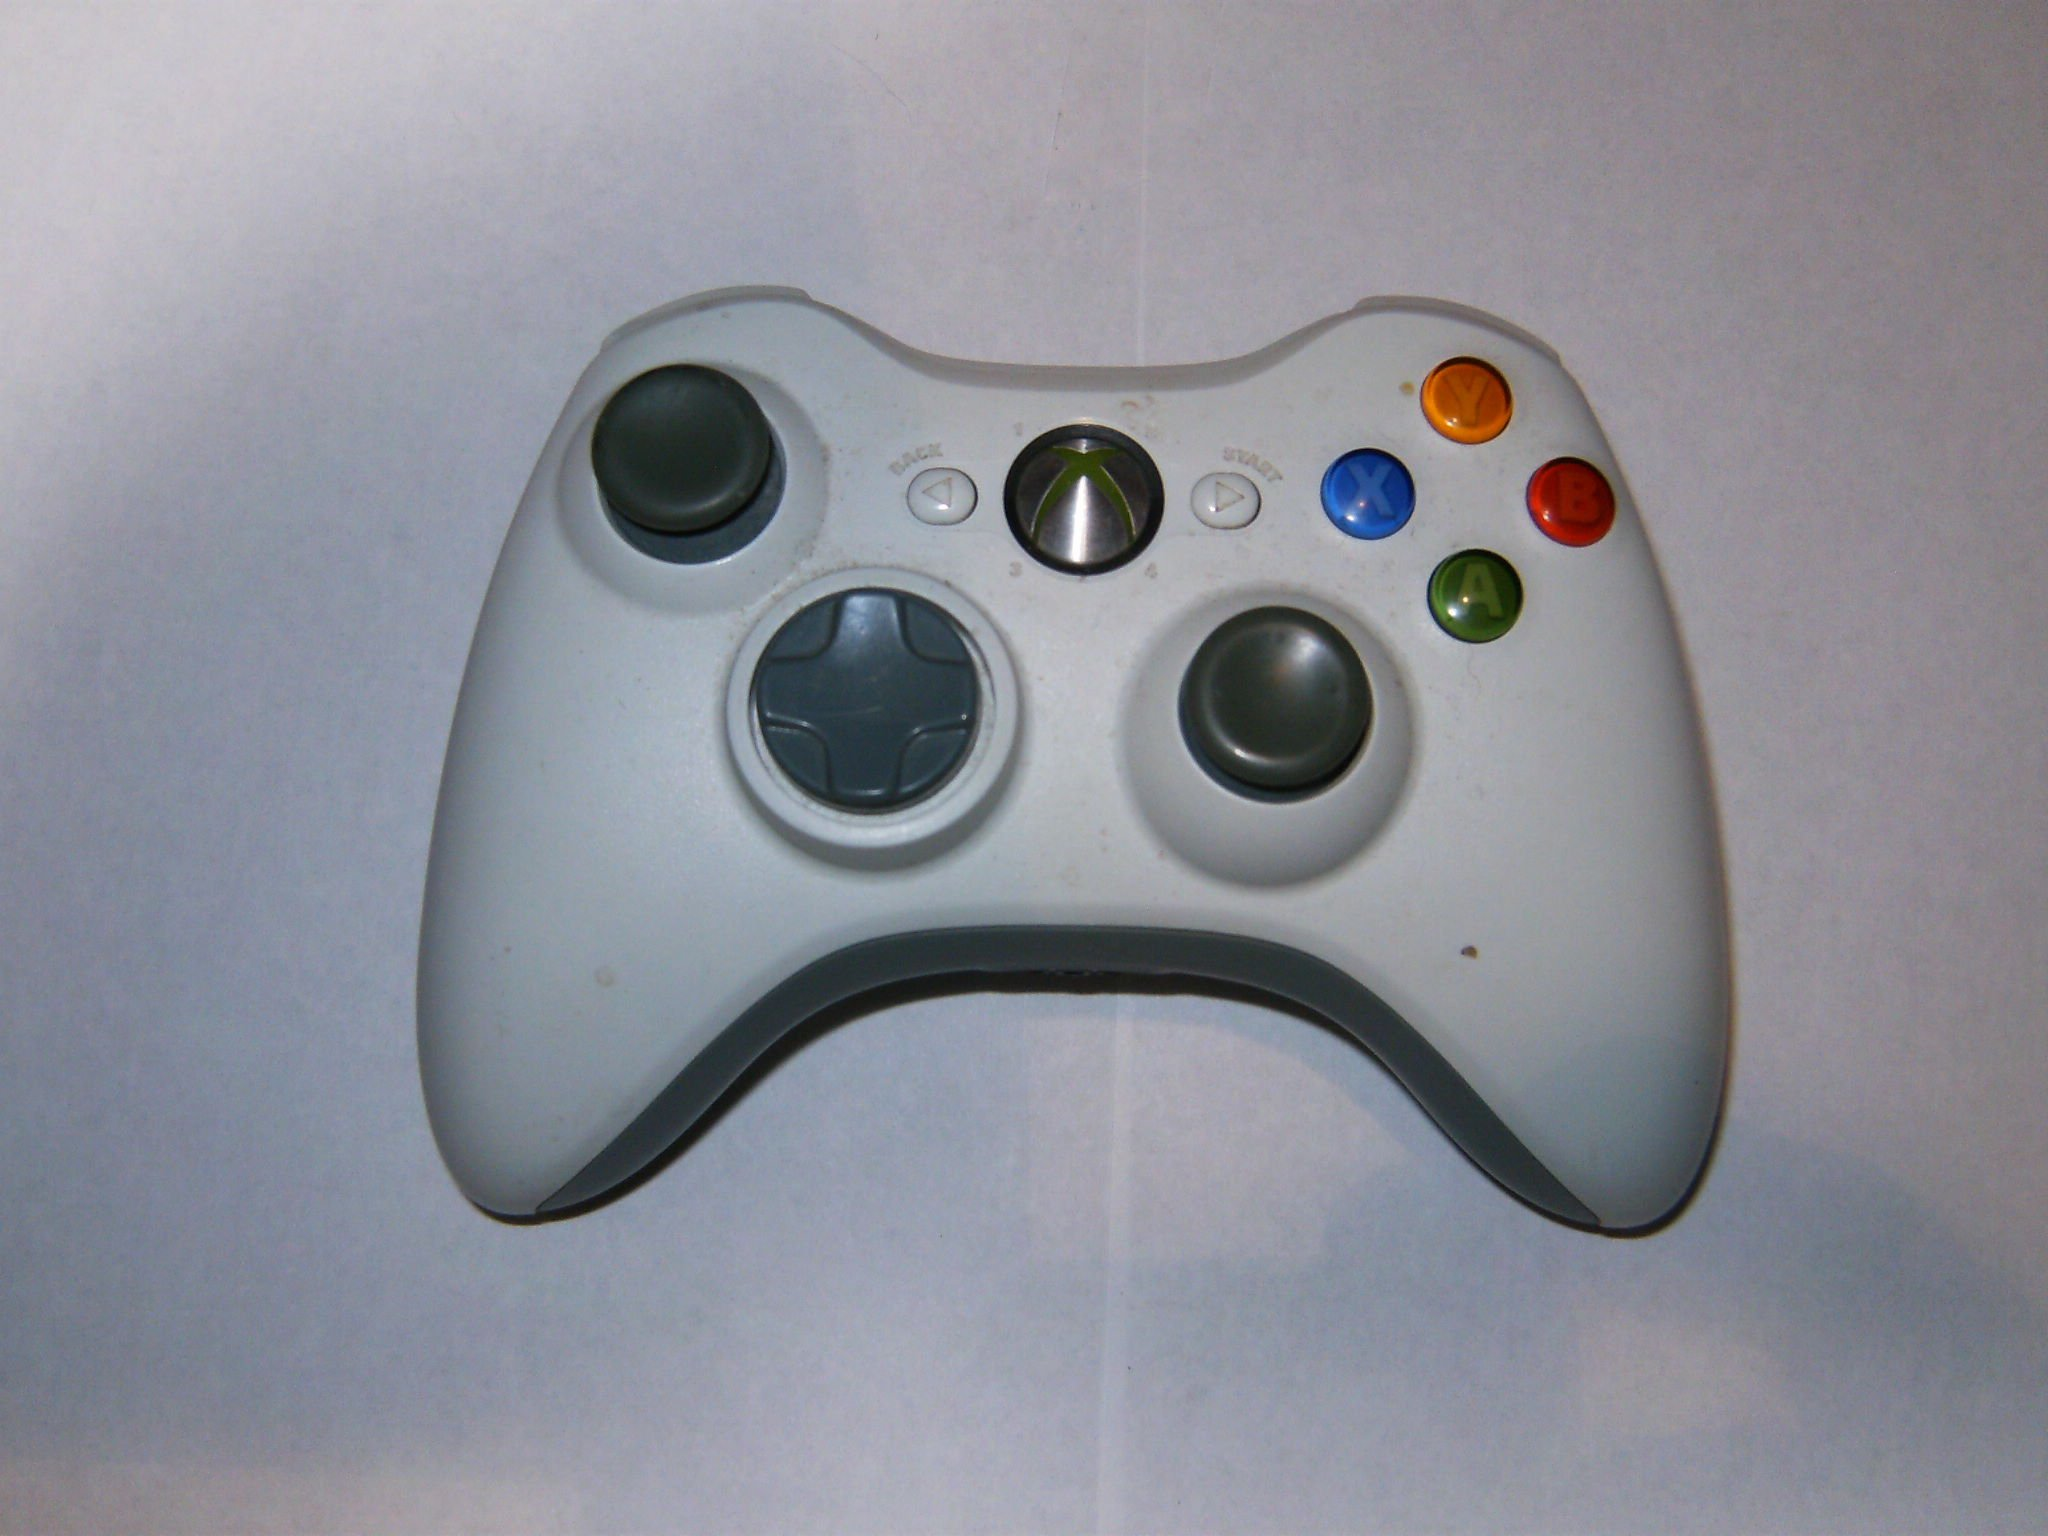 Xbox 360 Wireless Controller Left Analog Stick Replacement - iFixit